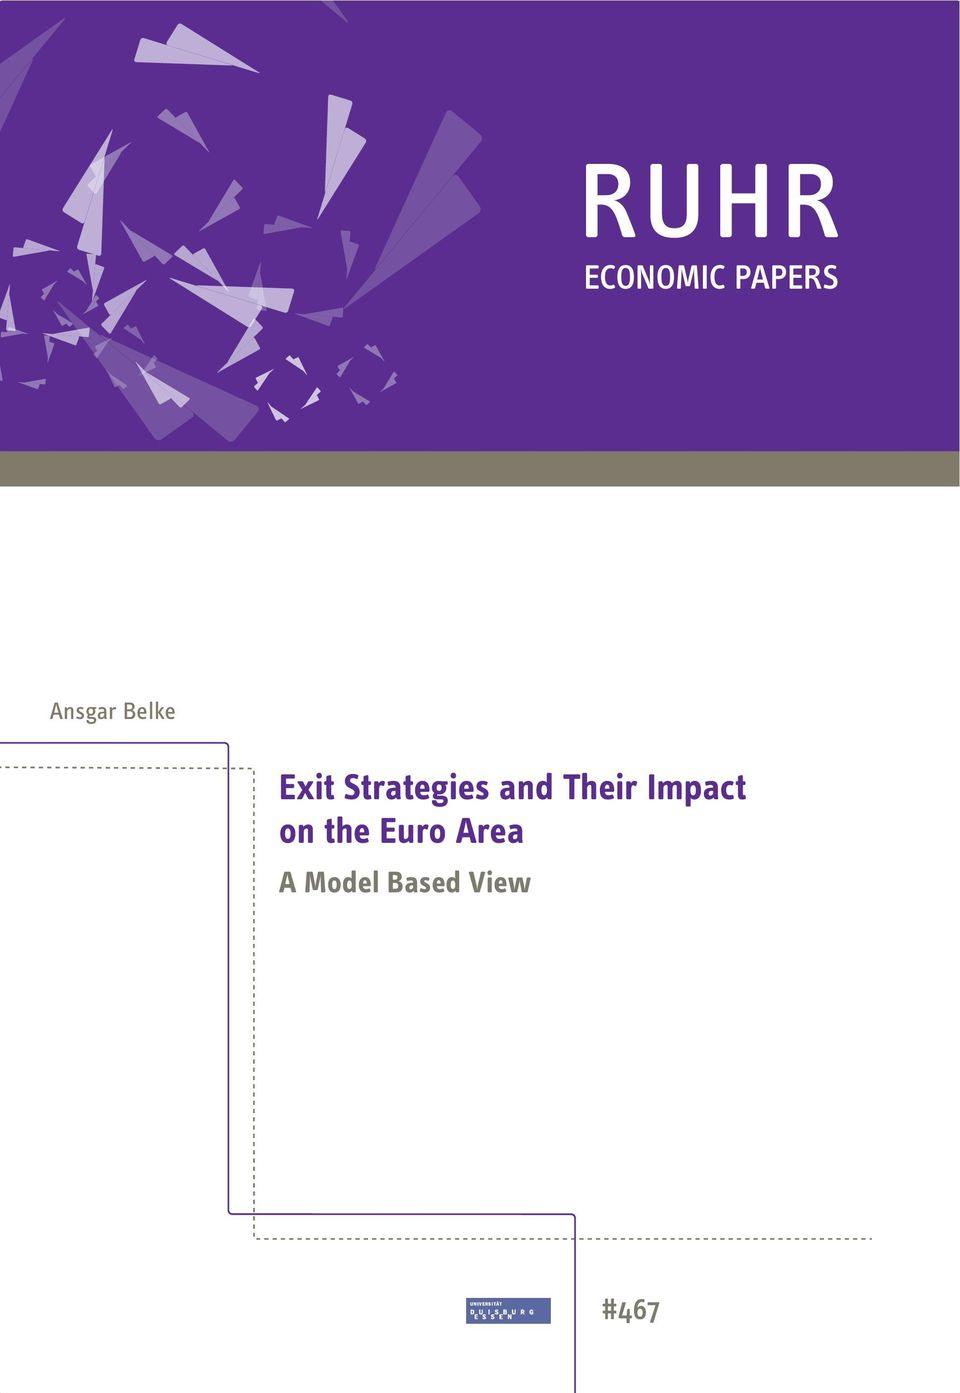 Strategies and Their